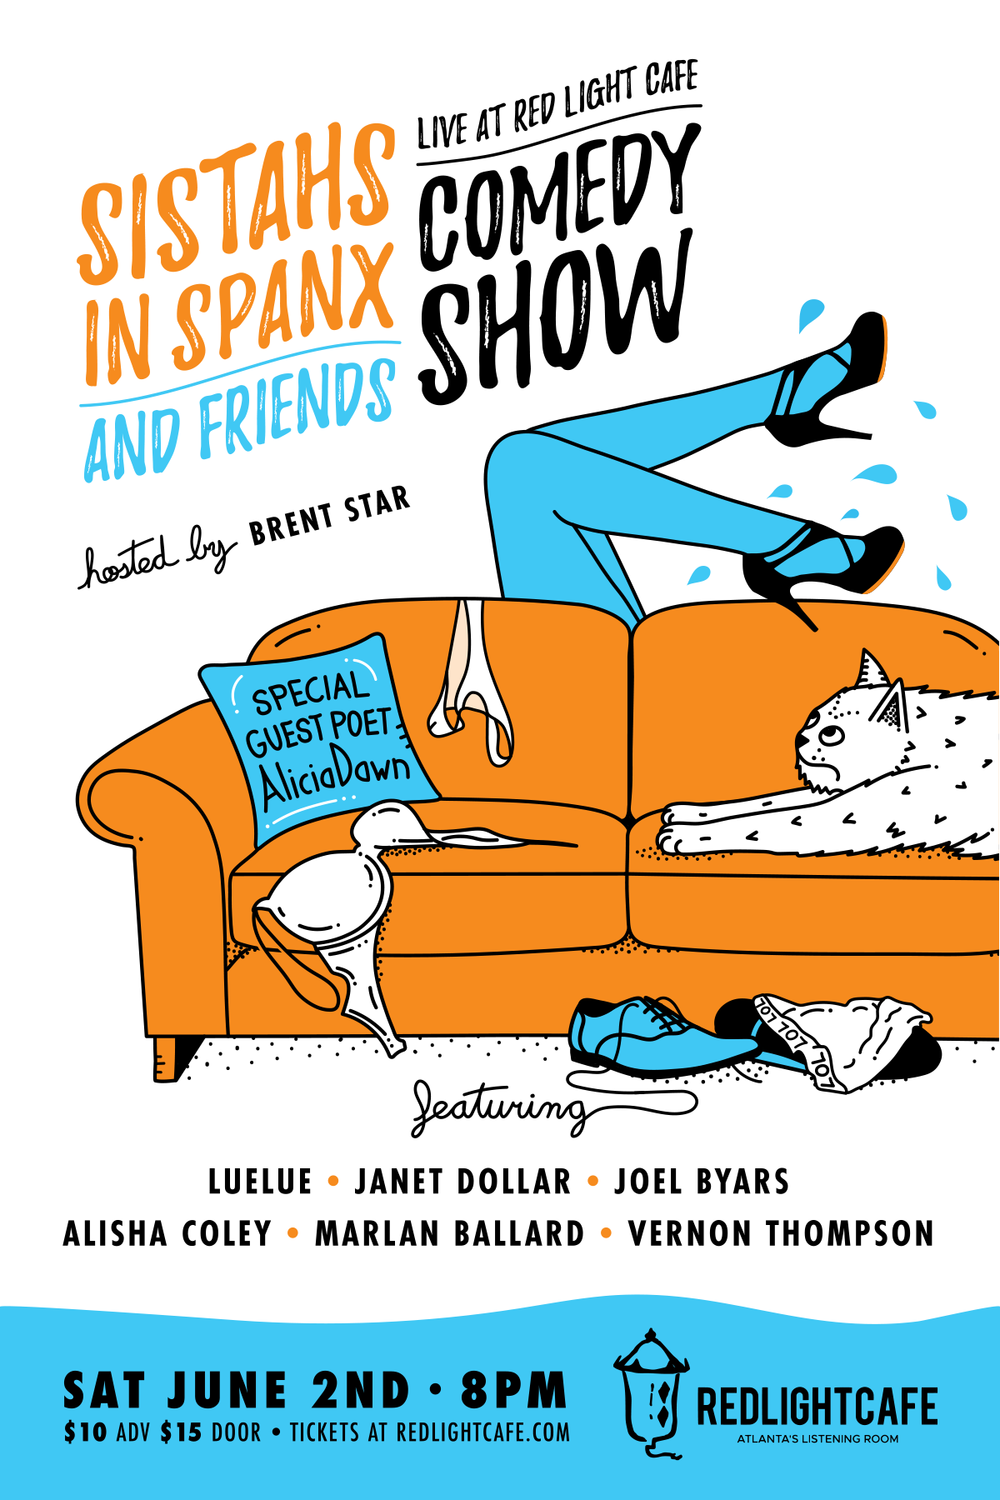 Sistahs in Spanx & Friends Comedy Show — June 2, 2018 — Red Light Café, Atlanta, GA